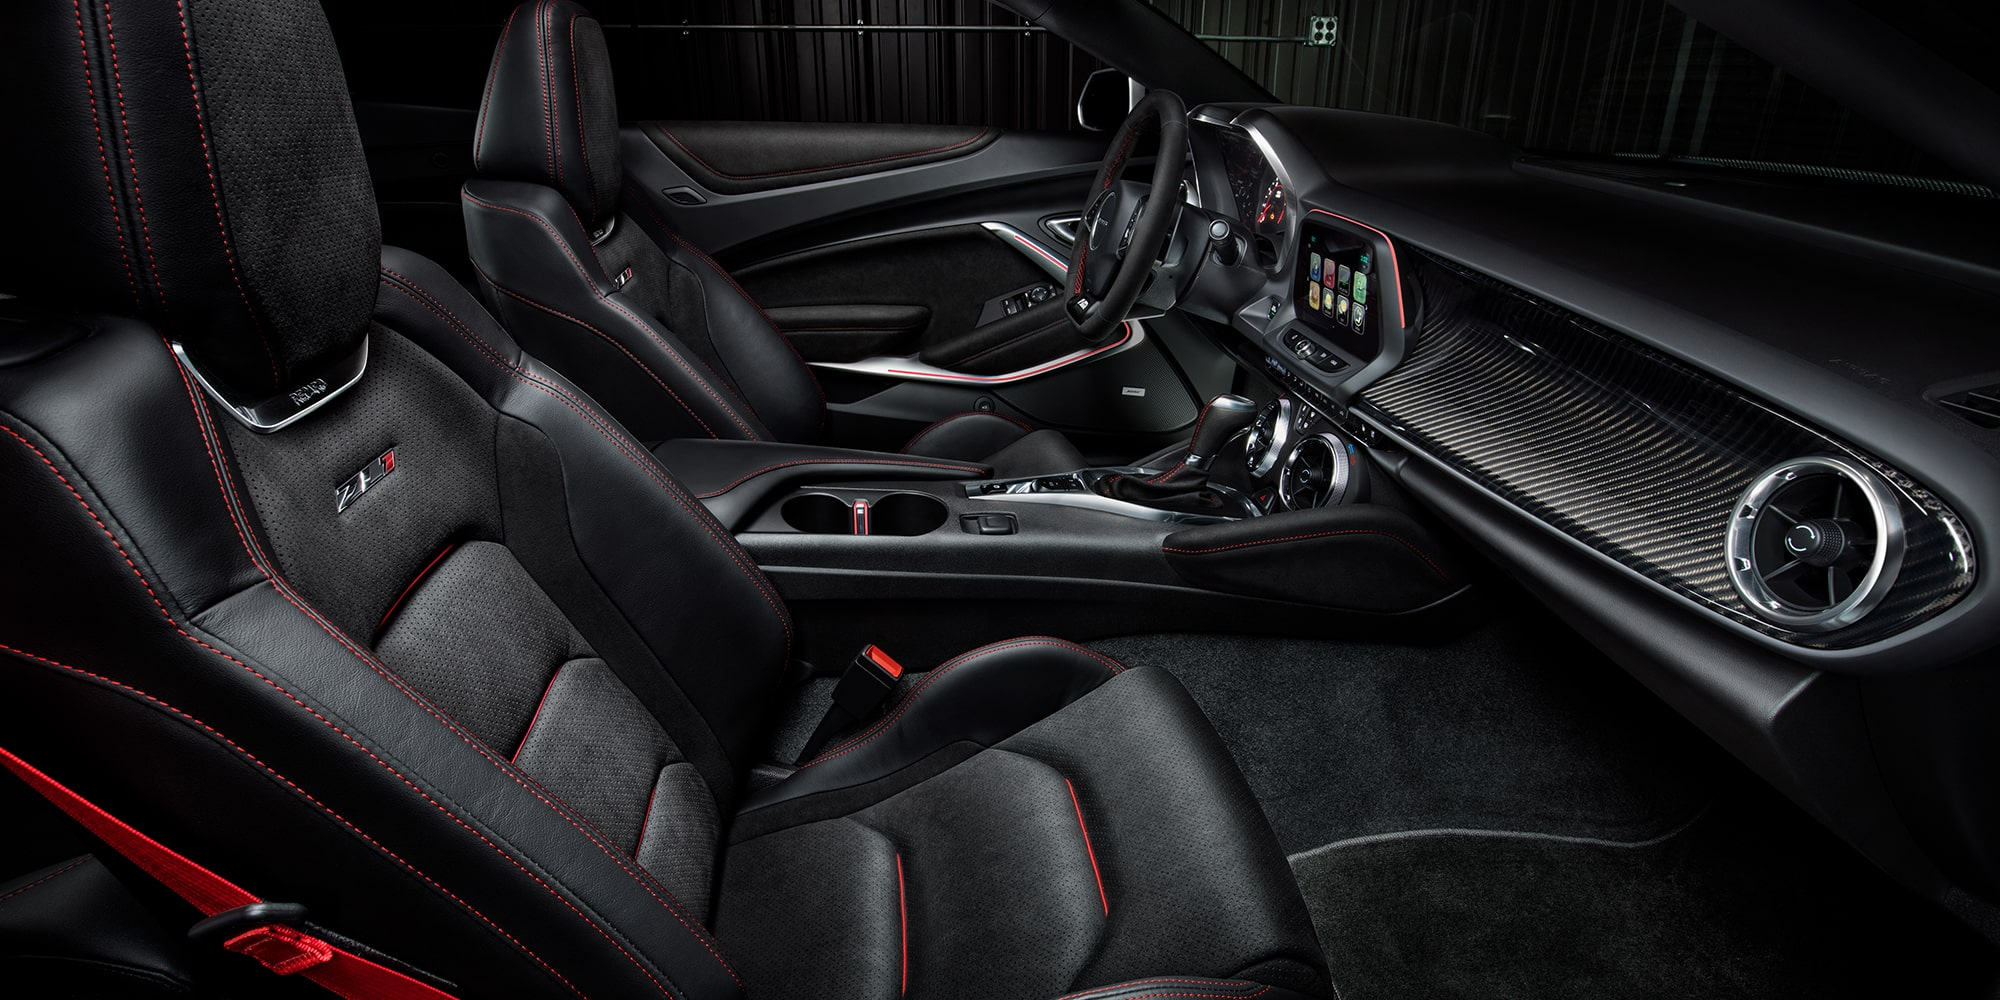 2018 Camaro Sports Car Performance: Interior